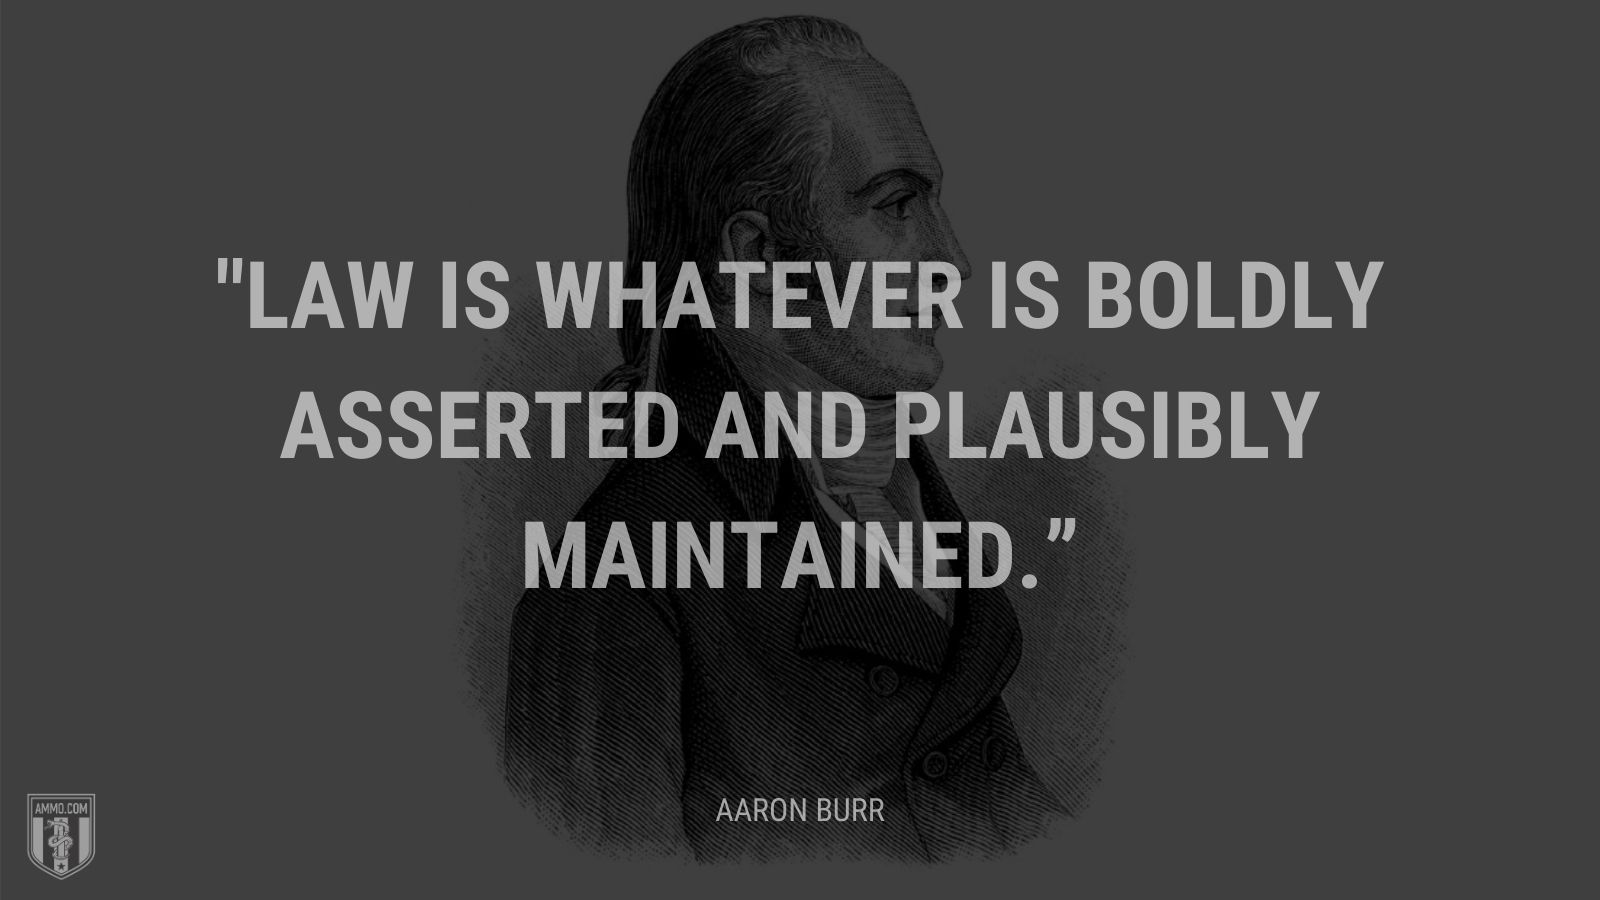 """Law is whatever is boldly asserted and plausibly maintained."" - Aaron Burr"